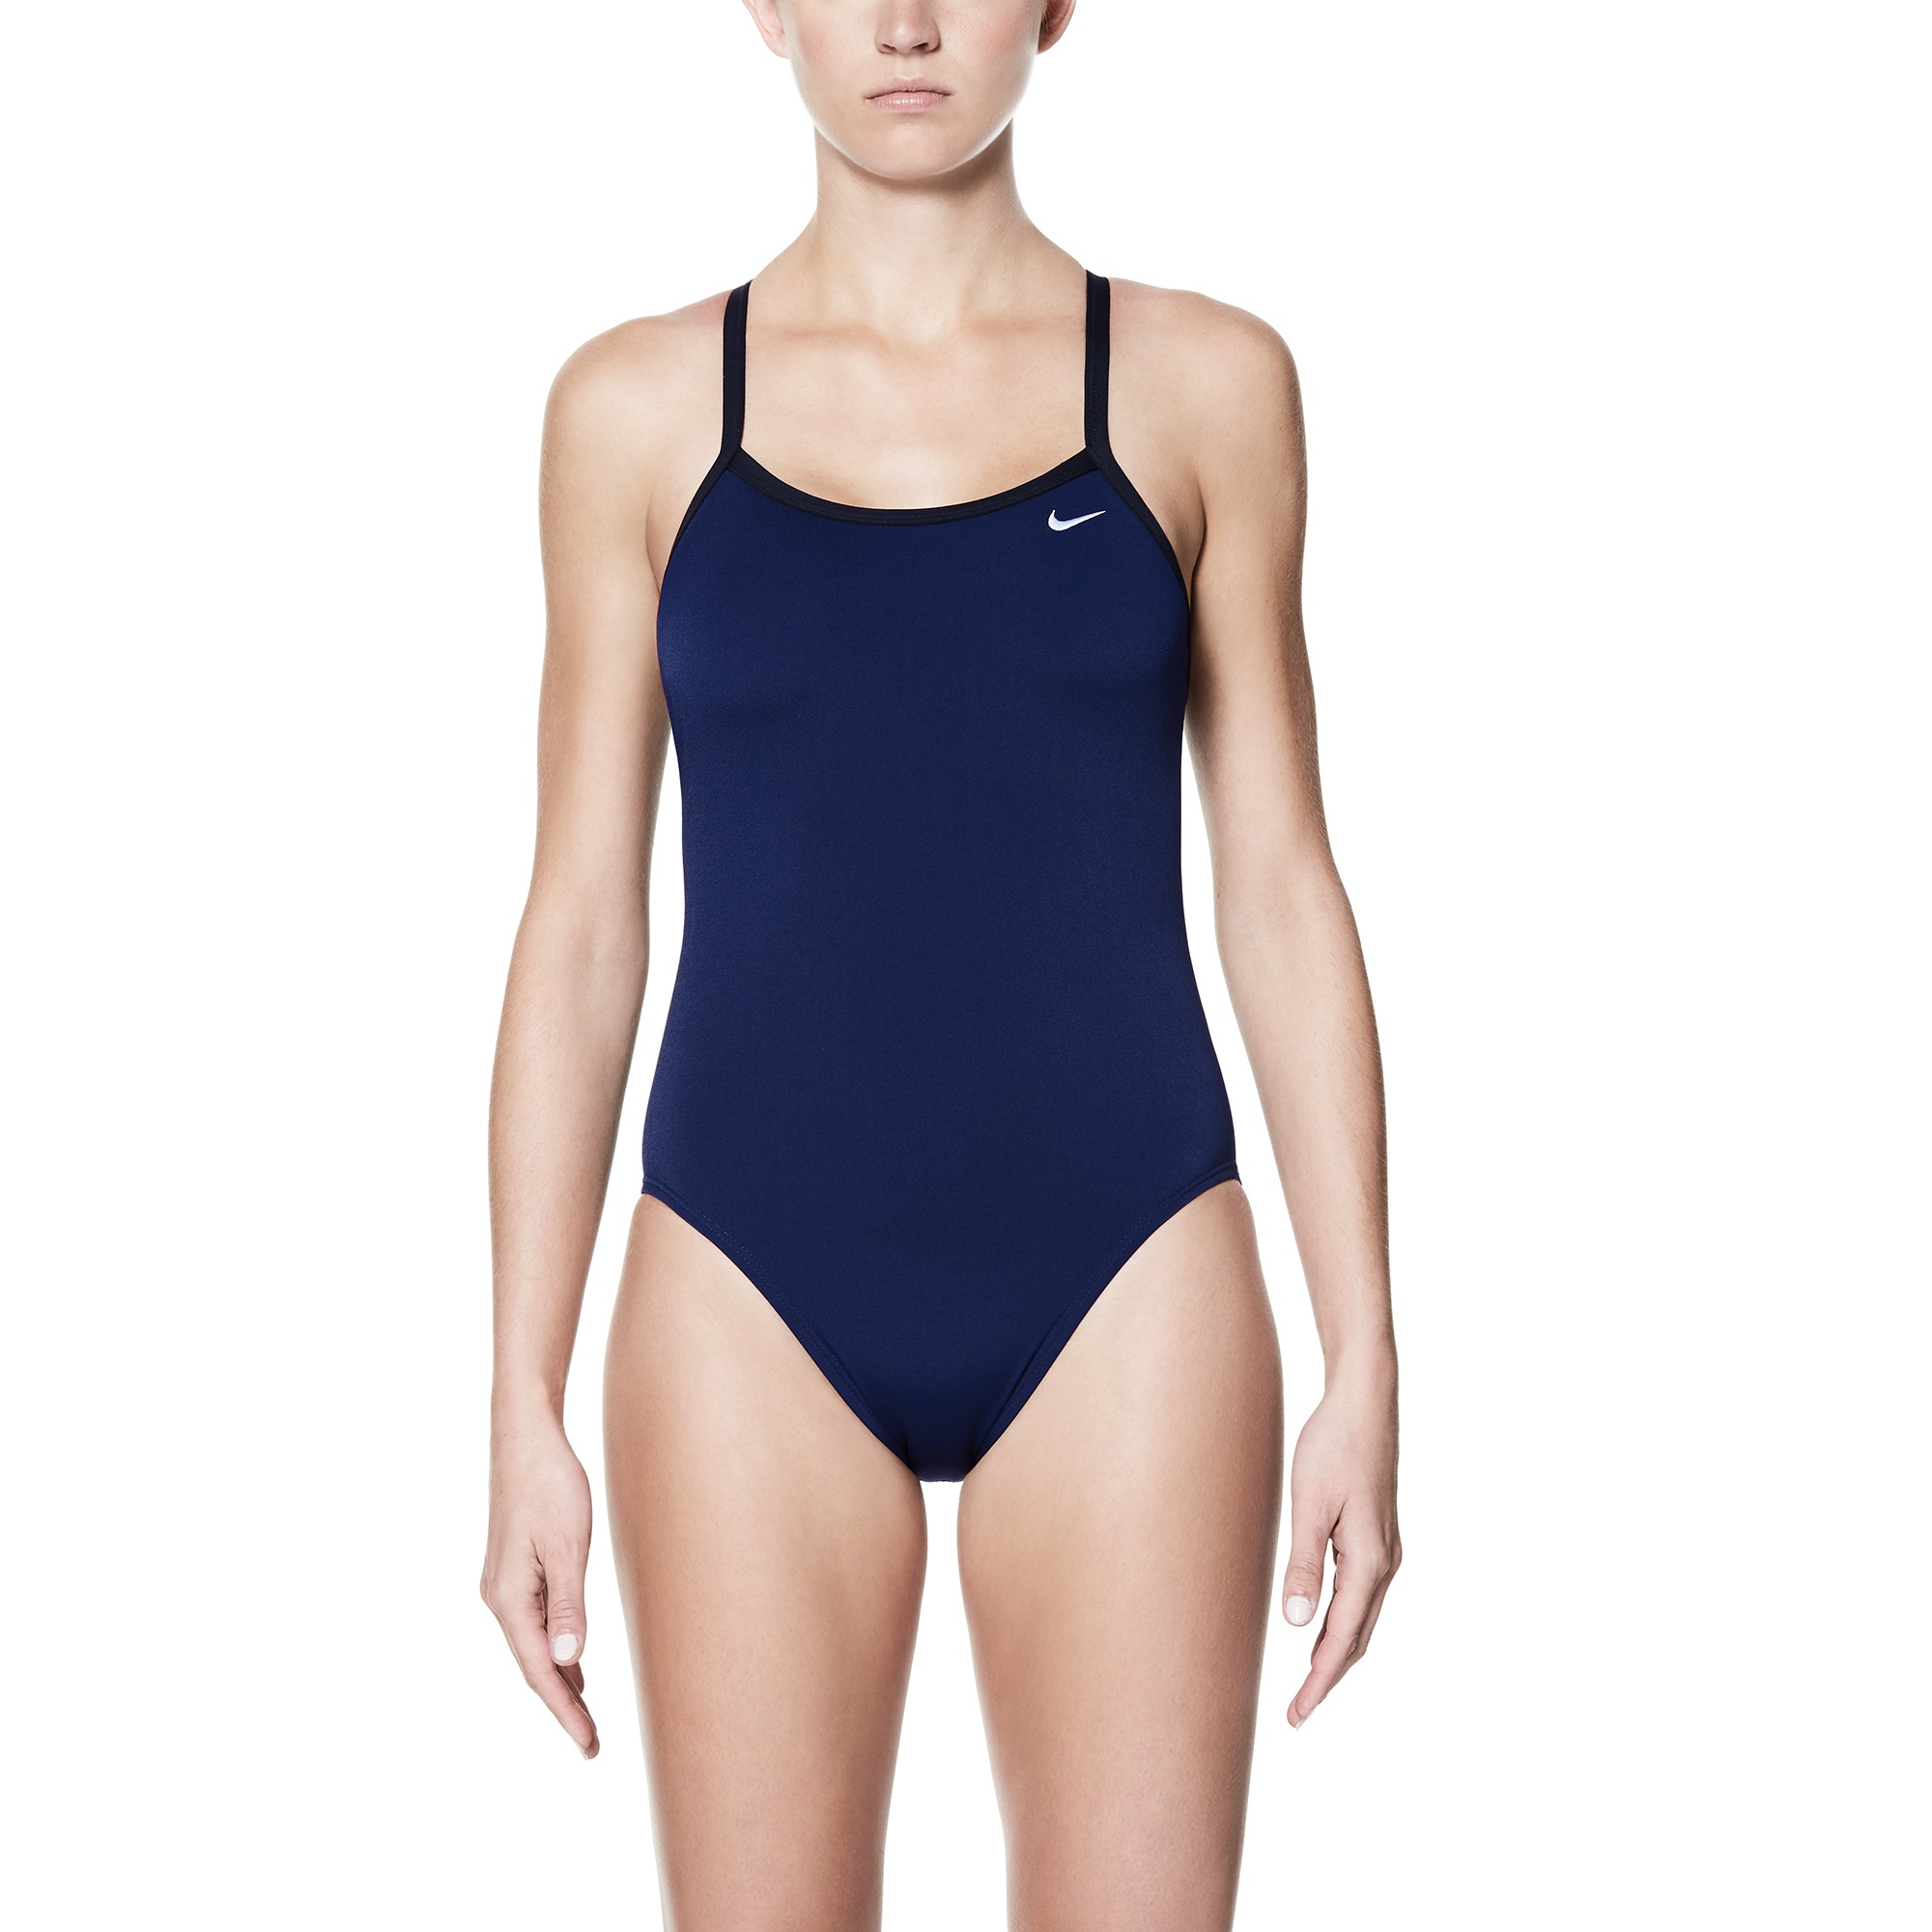 c3c99b923 Wiggle | Nike Womens Poly Core Solids Racerback One Piece | One Piece  Swimsuits